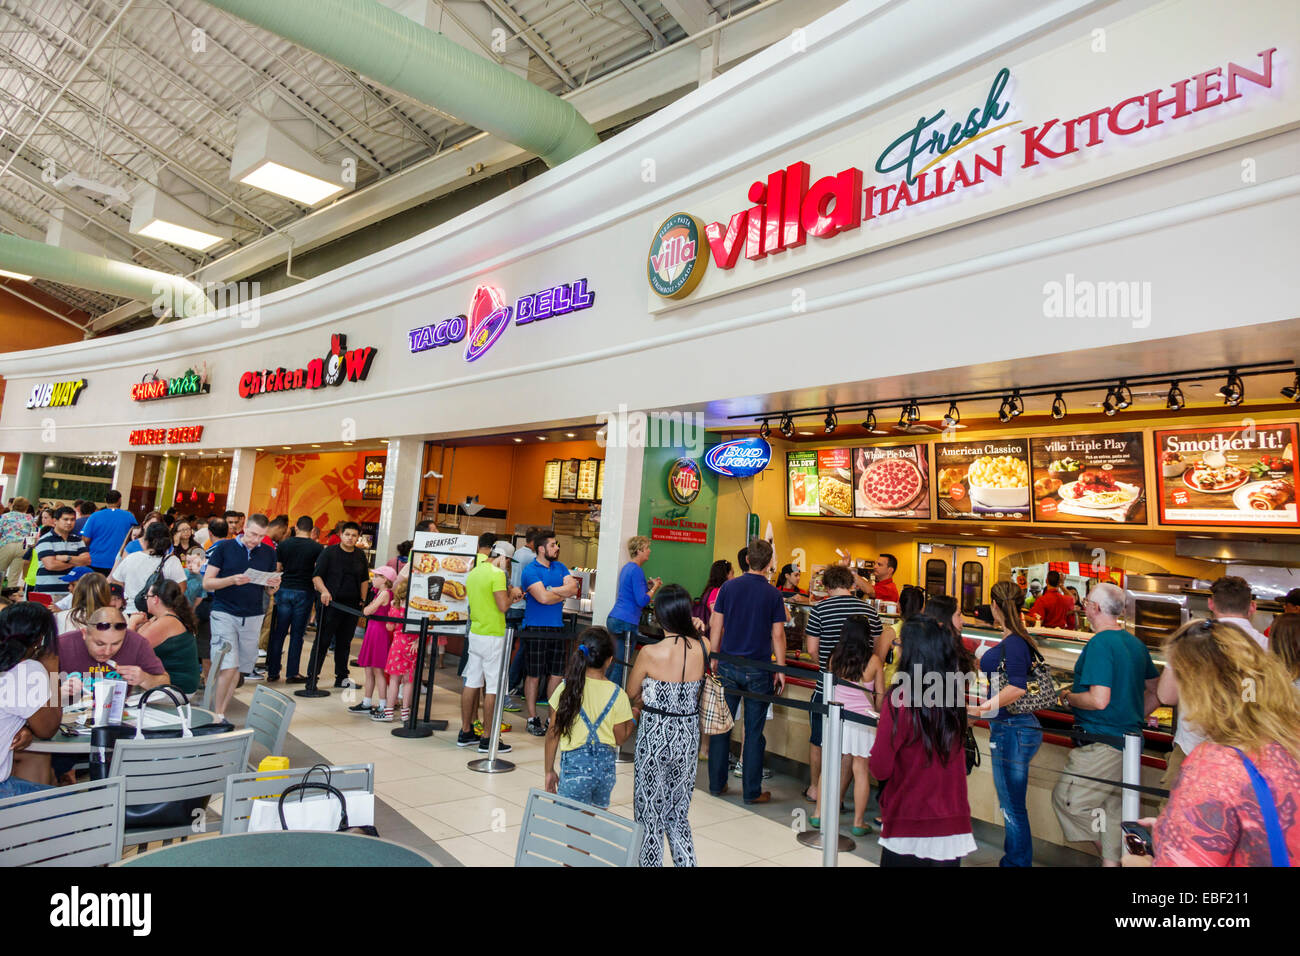 Marketplace Mall Food Court